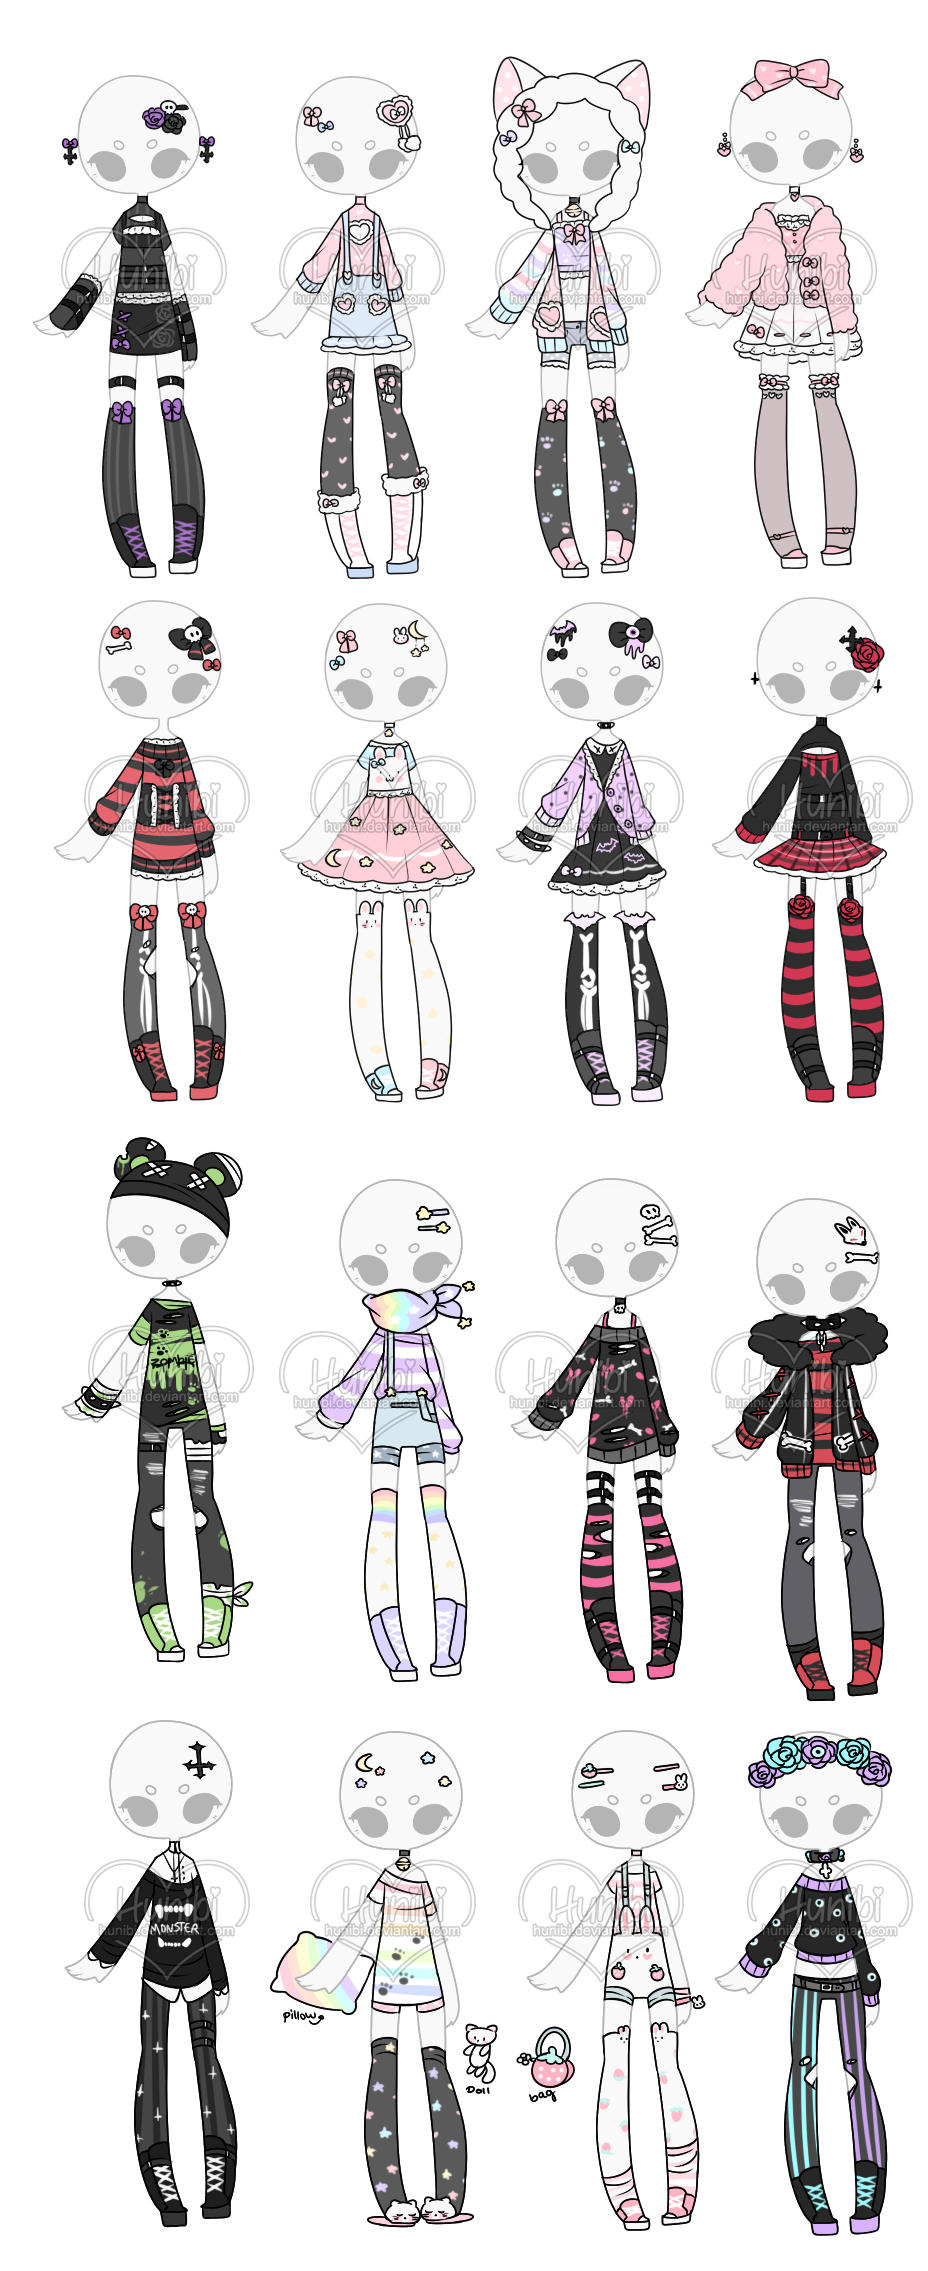 Outfit Adoptable Mix 43 Closed 0 16 By Hunibi On Deviantart